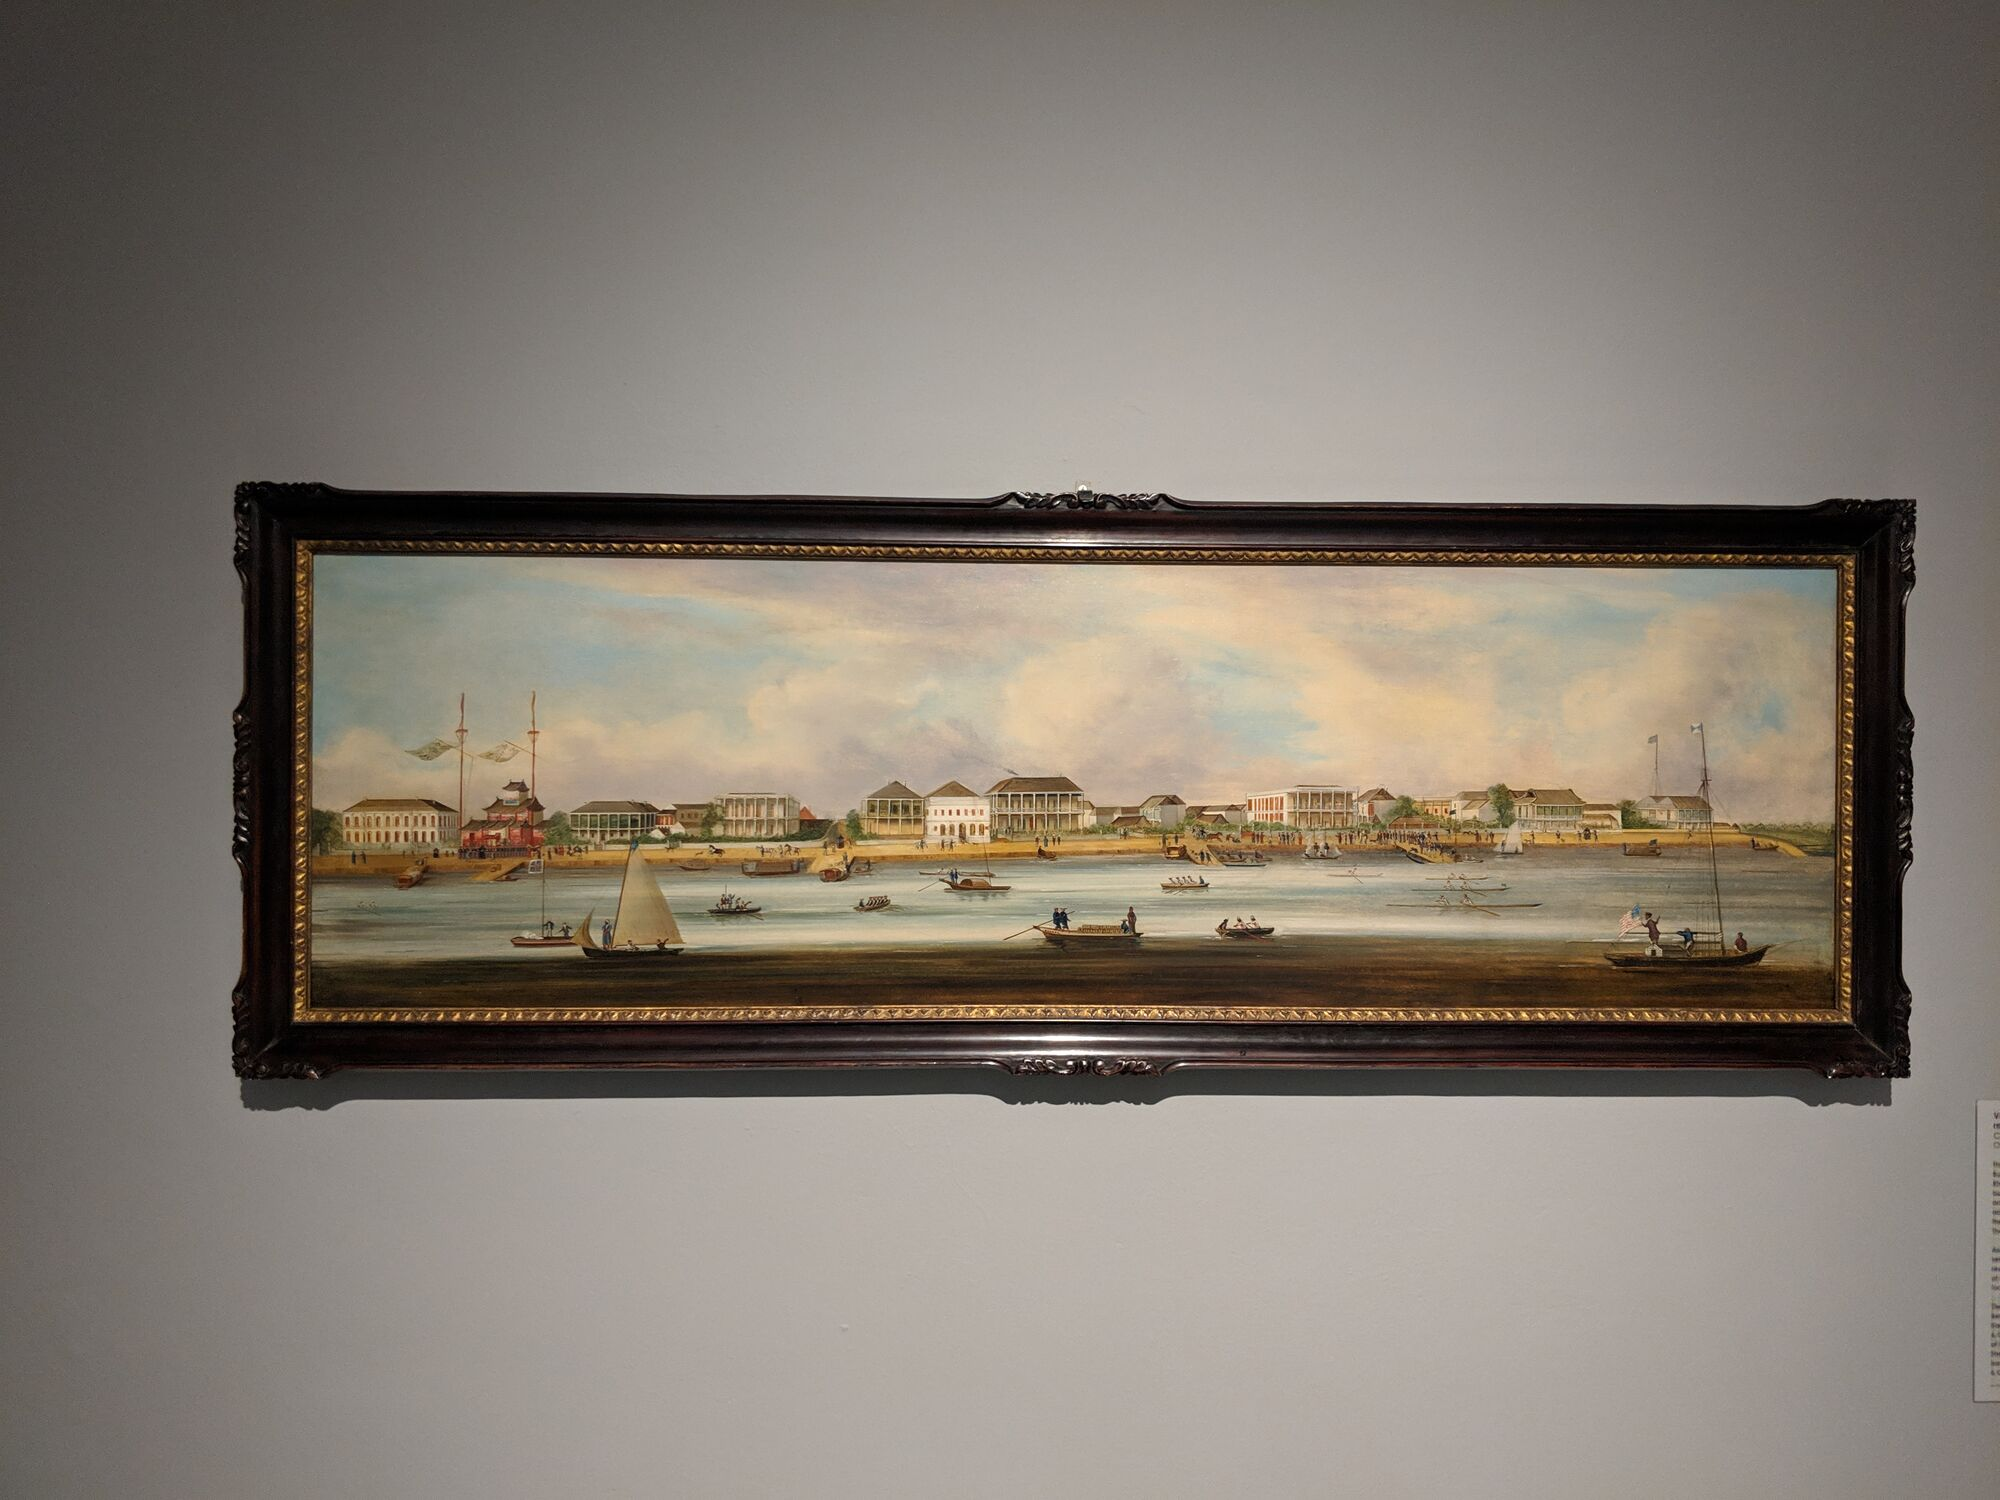 View of the Shanghai Bund, China, 1849-51, one of the earliest views of the Shanghai Bund, the embankment along the Huangpu River where foreign traders set up shop.